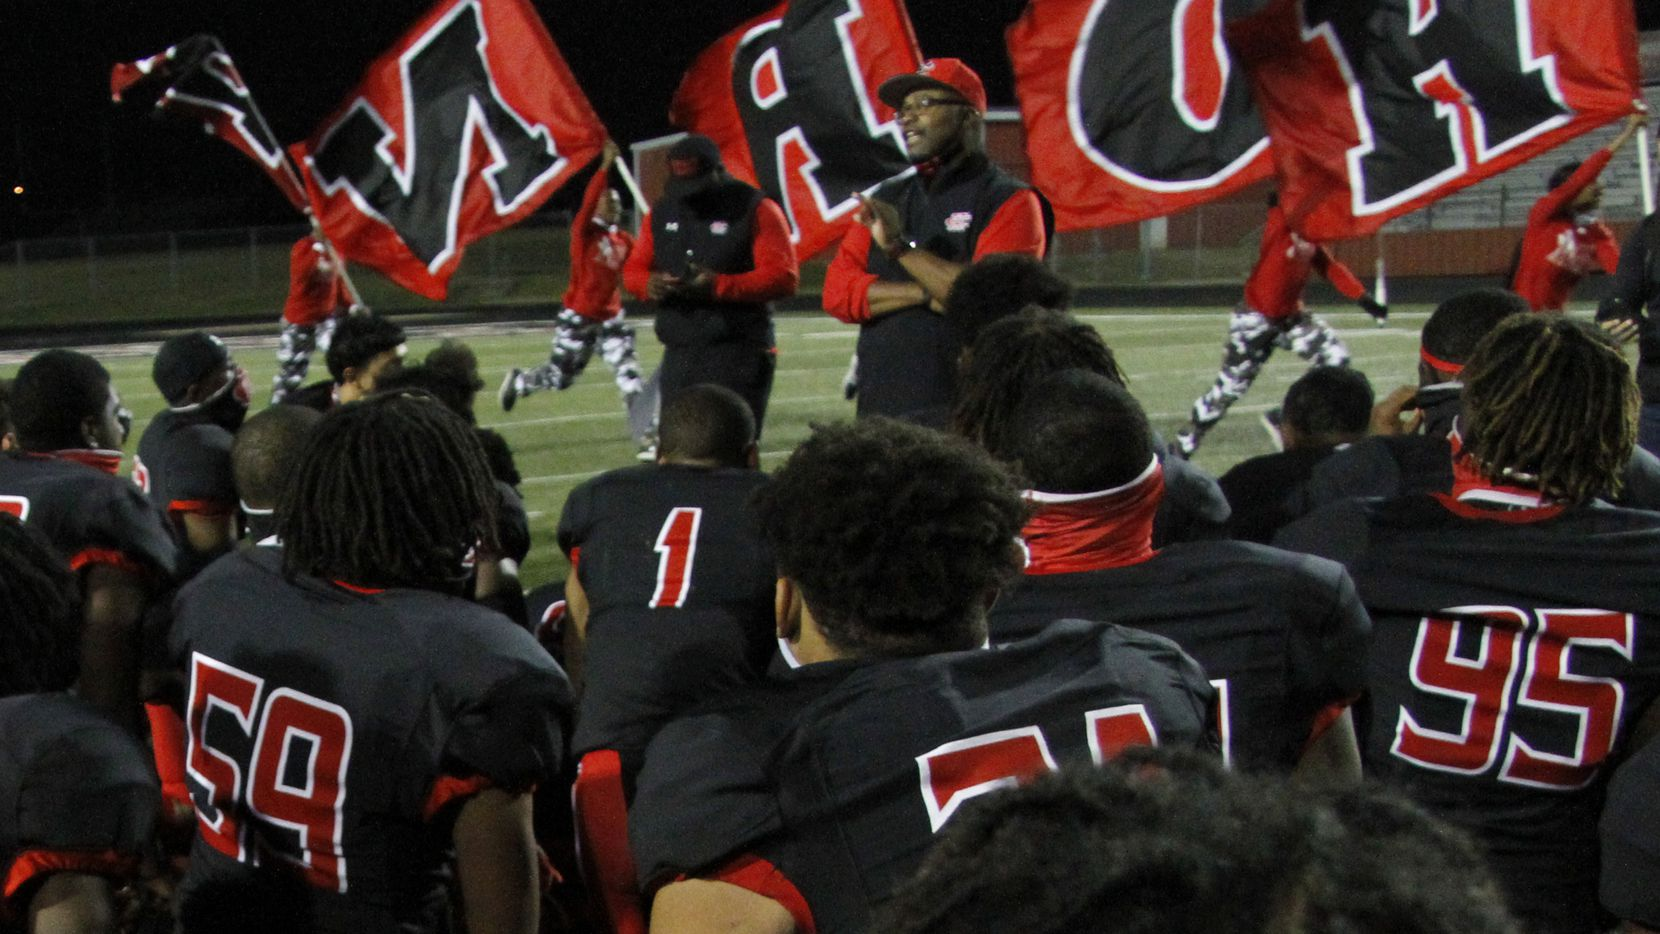 Cedar Hill head coach Carlos Lynn shares a congratulatory message to his team as members of the Red Army Flag Runners sprint past in the background following the Longhorn's 49-42 victory over DeSoto. The two teams played their District 11-6A  football game at Longhorn Stadium in Cedar Hill on November 6, 2020. (Steve Hamm/ Special Contributor)